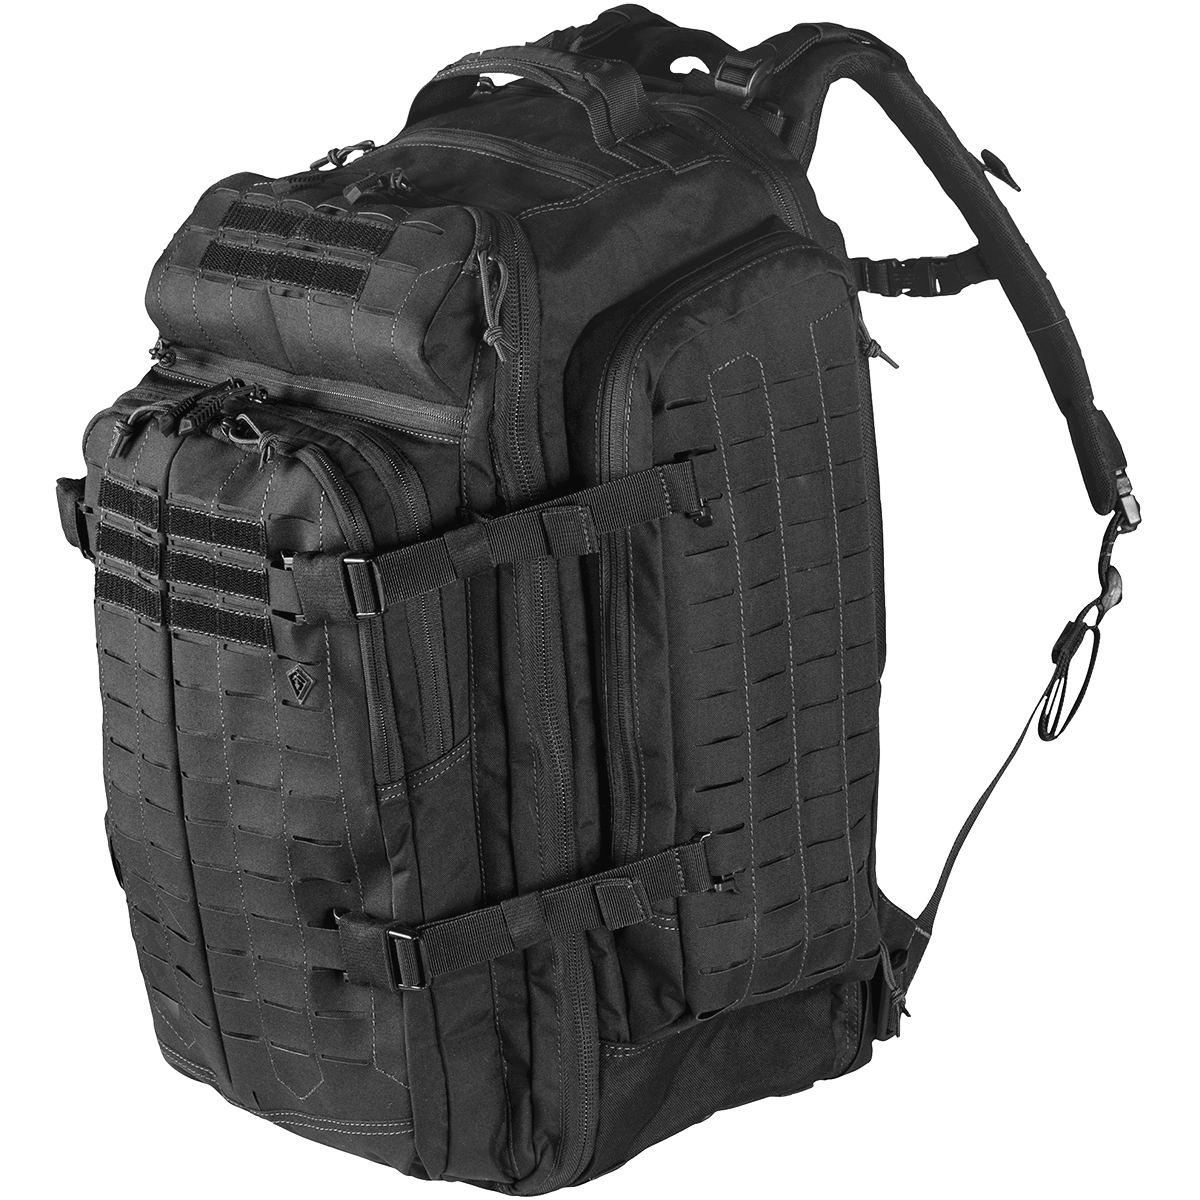 Details about First Tactical Tactix 3-Day Backpack Security Police Nylon  MOLLE Rucksack Black e70b56e32f5